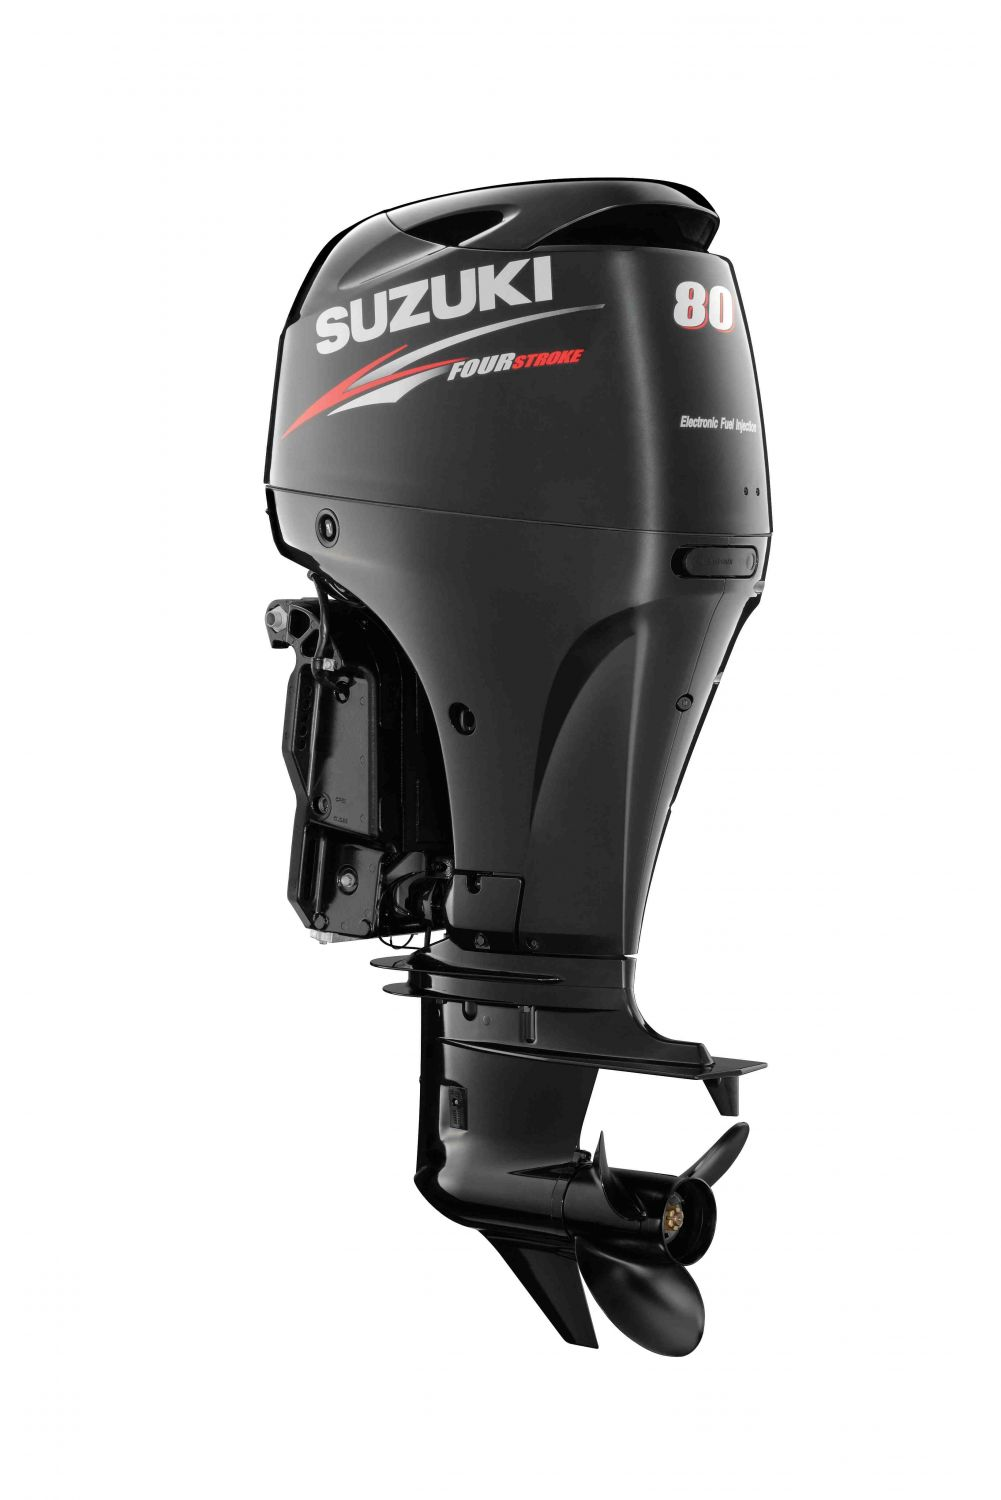 Suzuki DF80A four stroke marine outboard engine